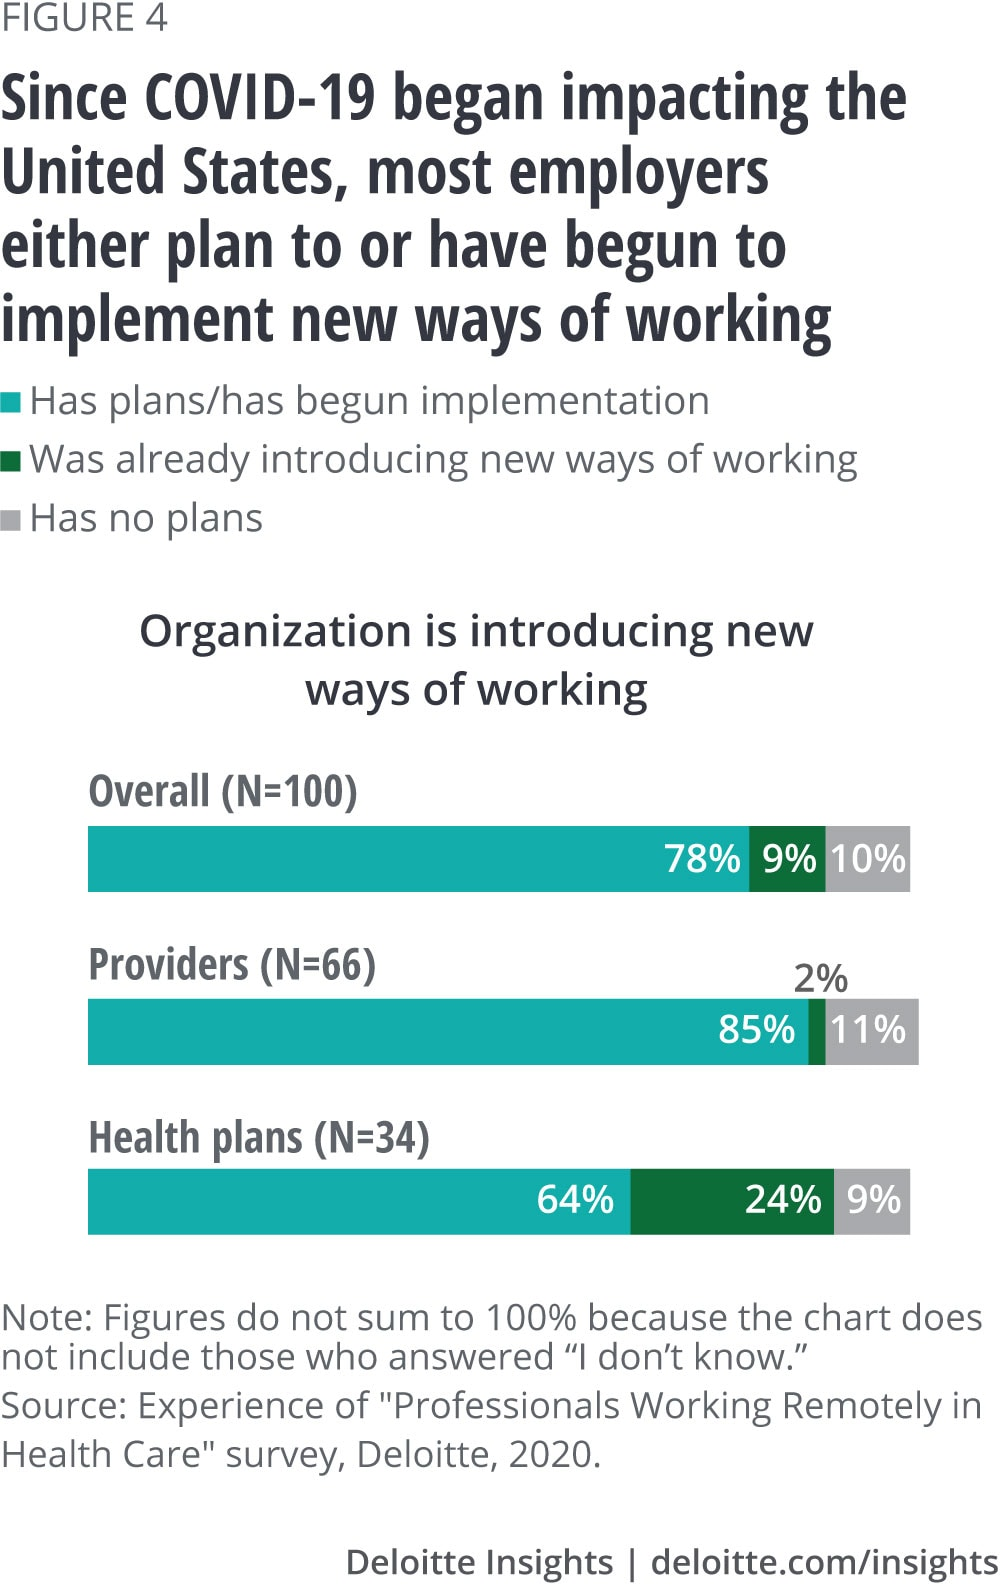 Since COVID-19 began impacting the United States, most employers either plan to or have begun to implement new ways of working